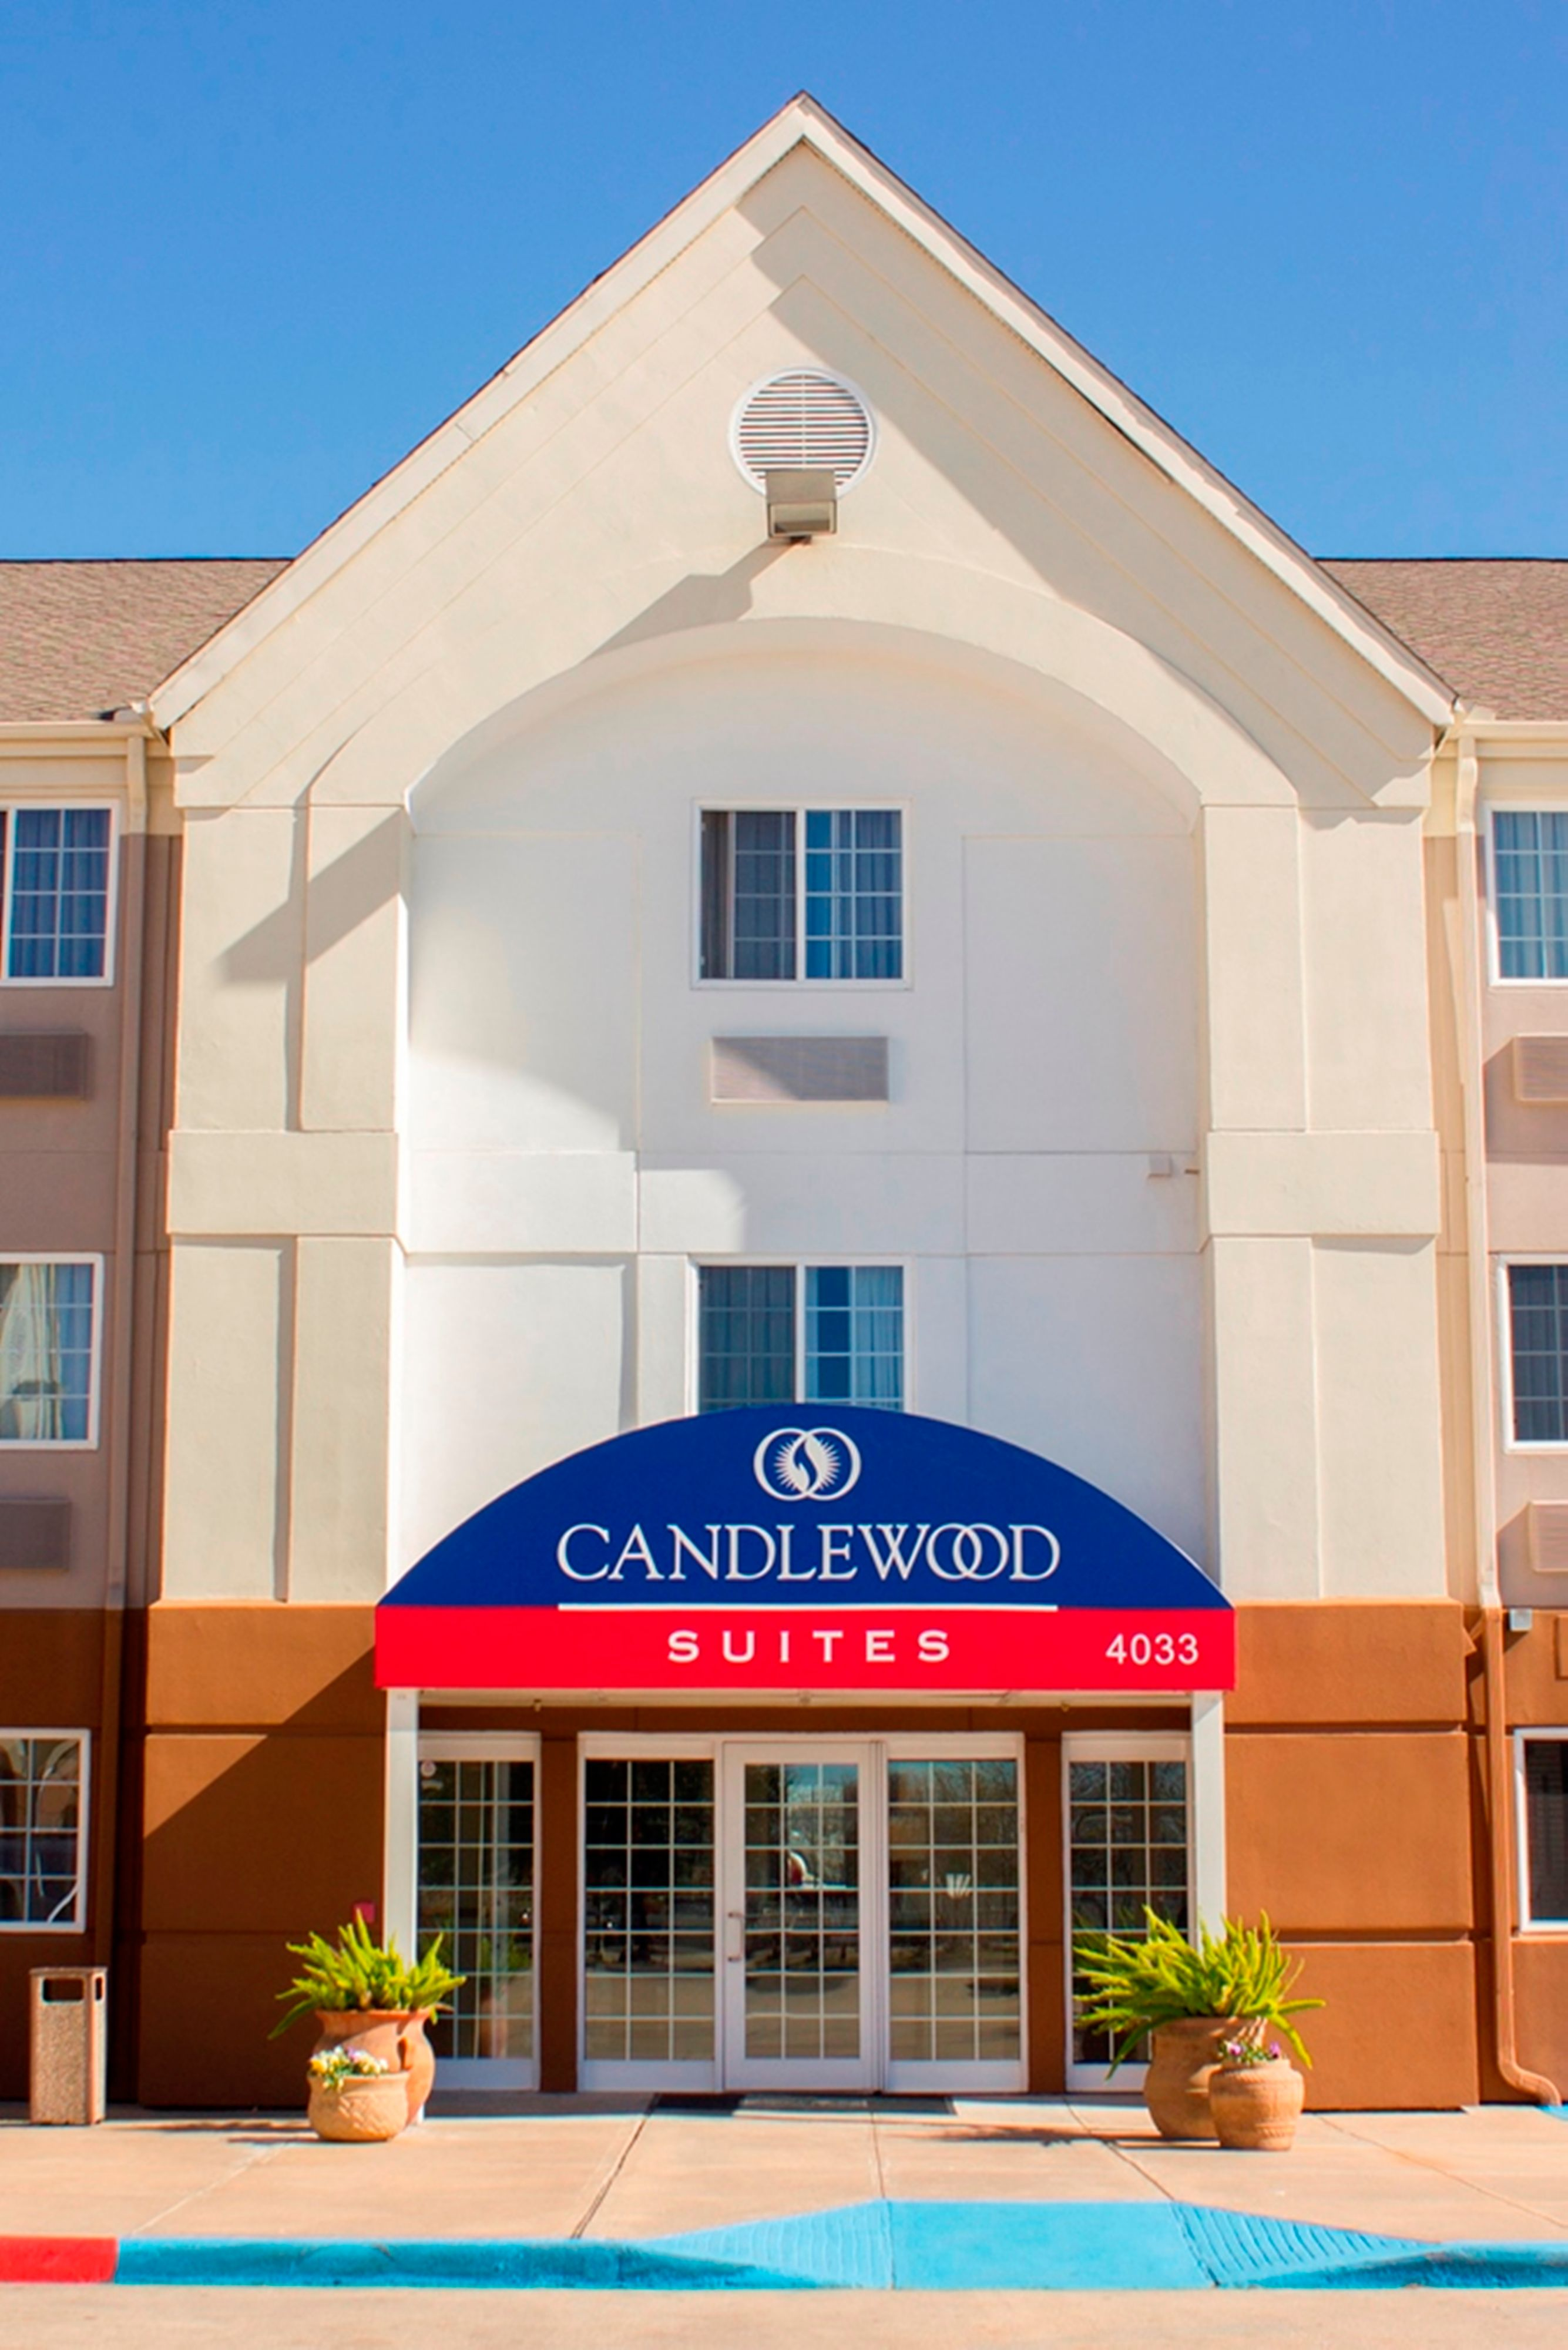 Candlewood Suites Houston Medical Center image 5